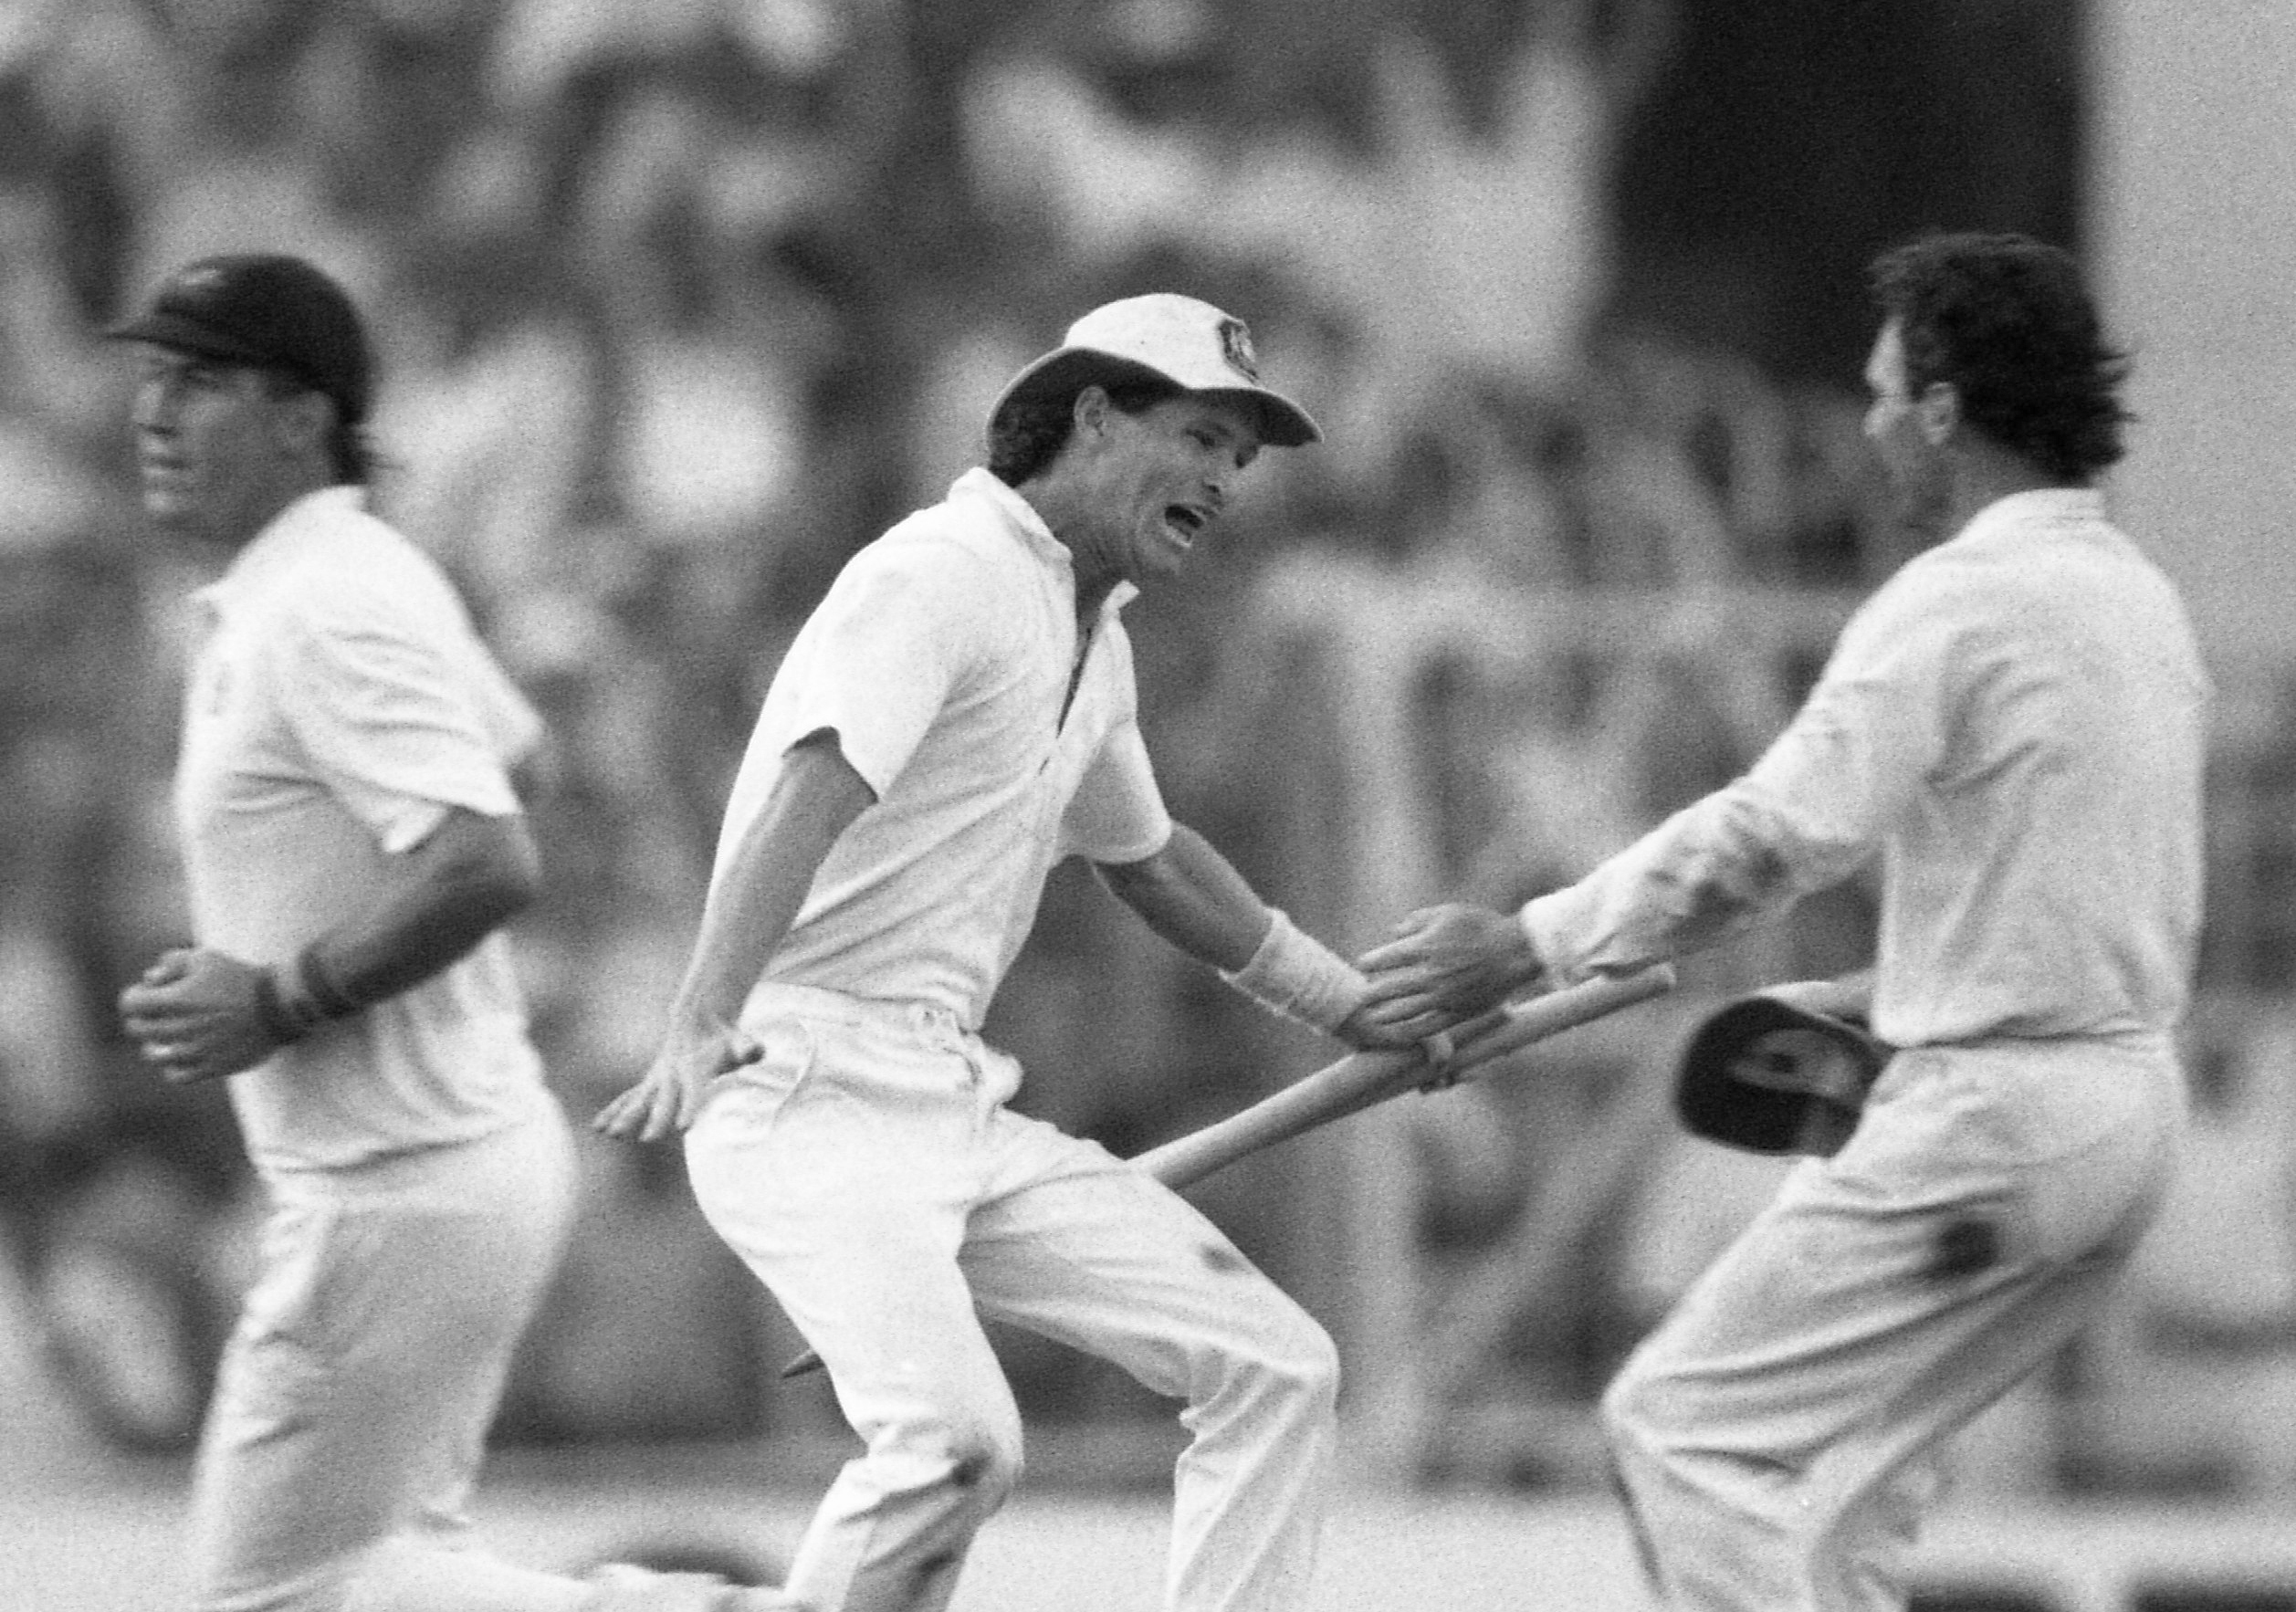 Jones, middle, has died aged 59 after making a name for himself as a successful batsman and outfielder for Australia